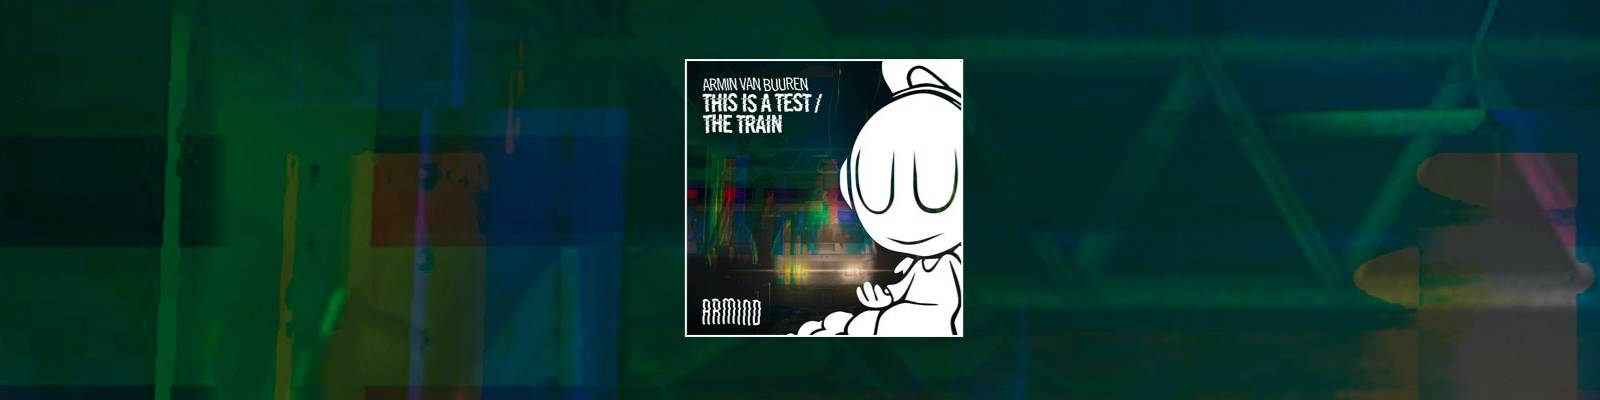 OUT NOW on ARMIND: Armin van Buuren – This Is A Test / The Train